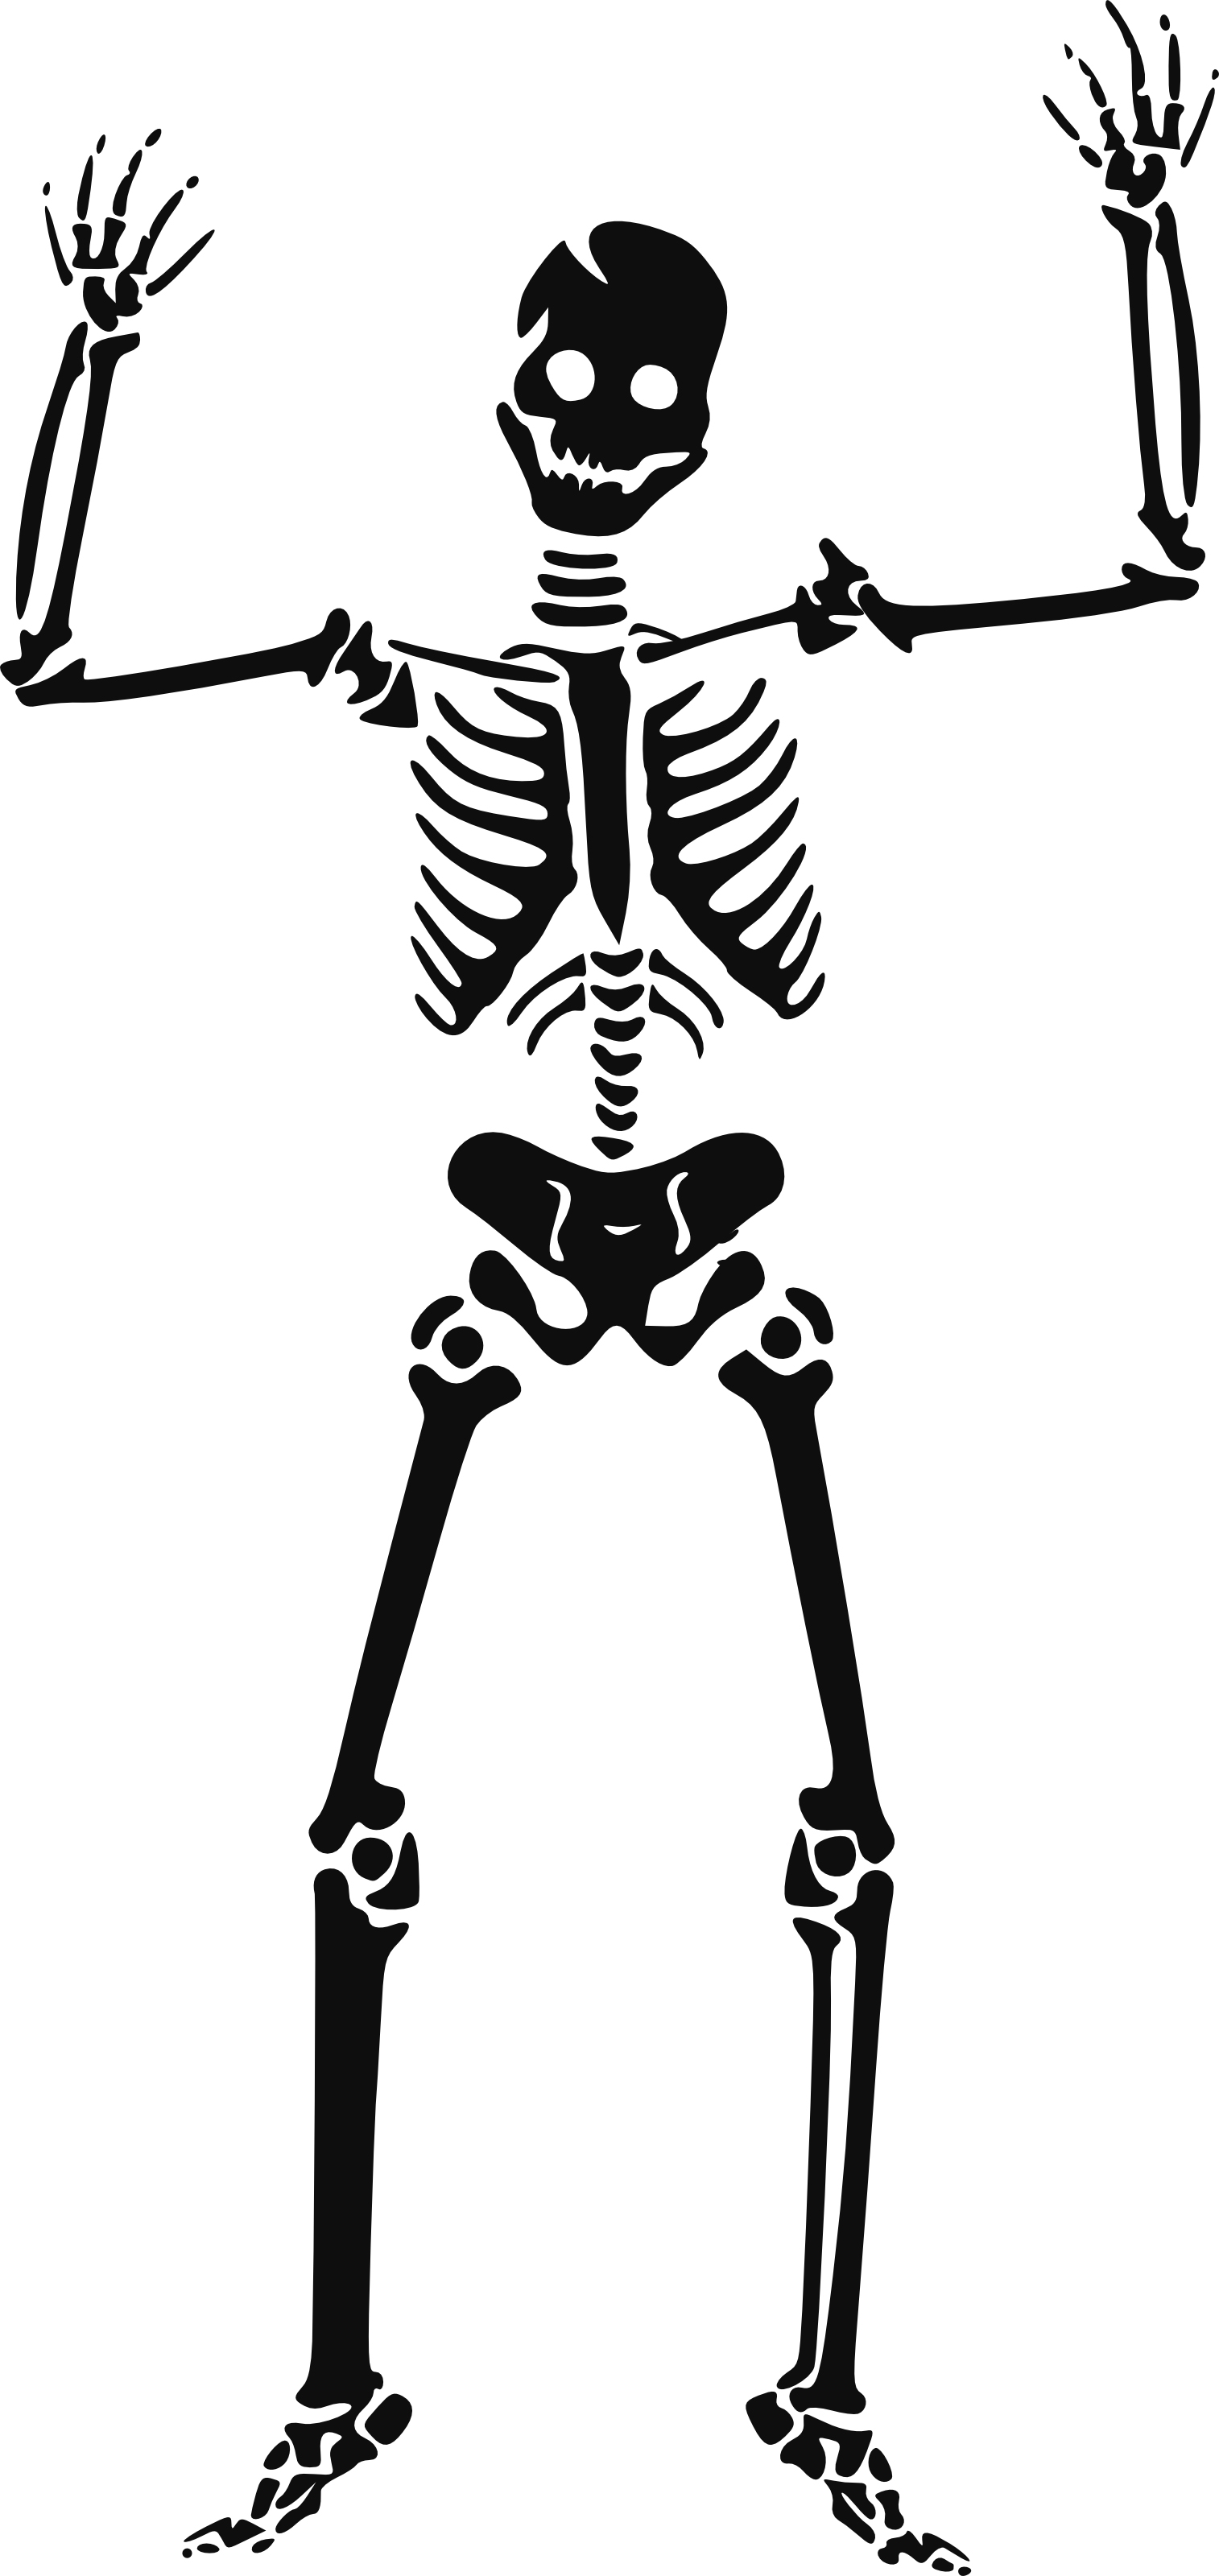 Halloween skeleton clipart free clipart images image